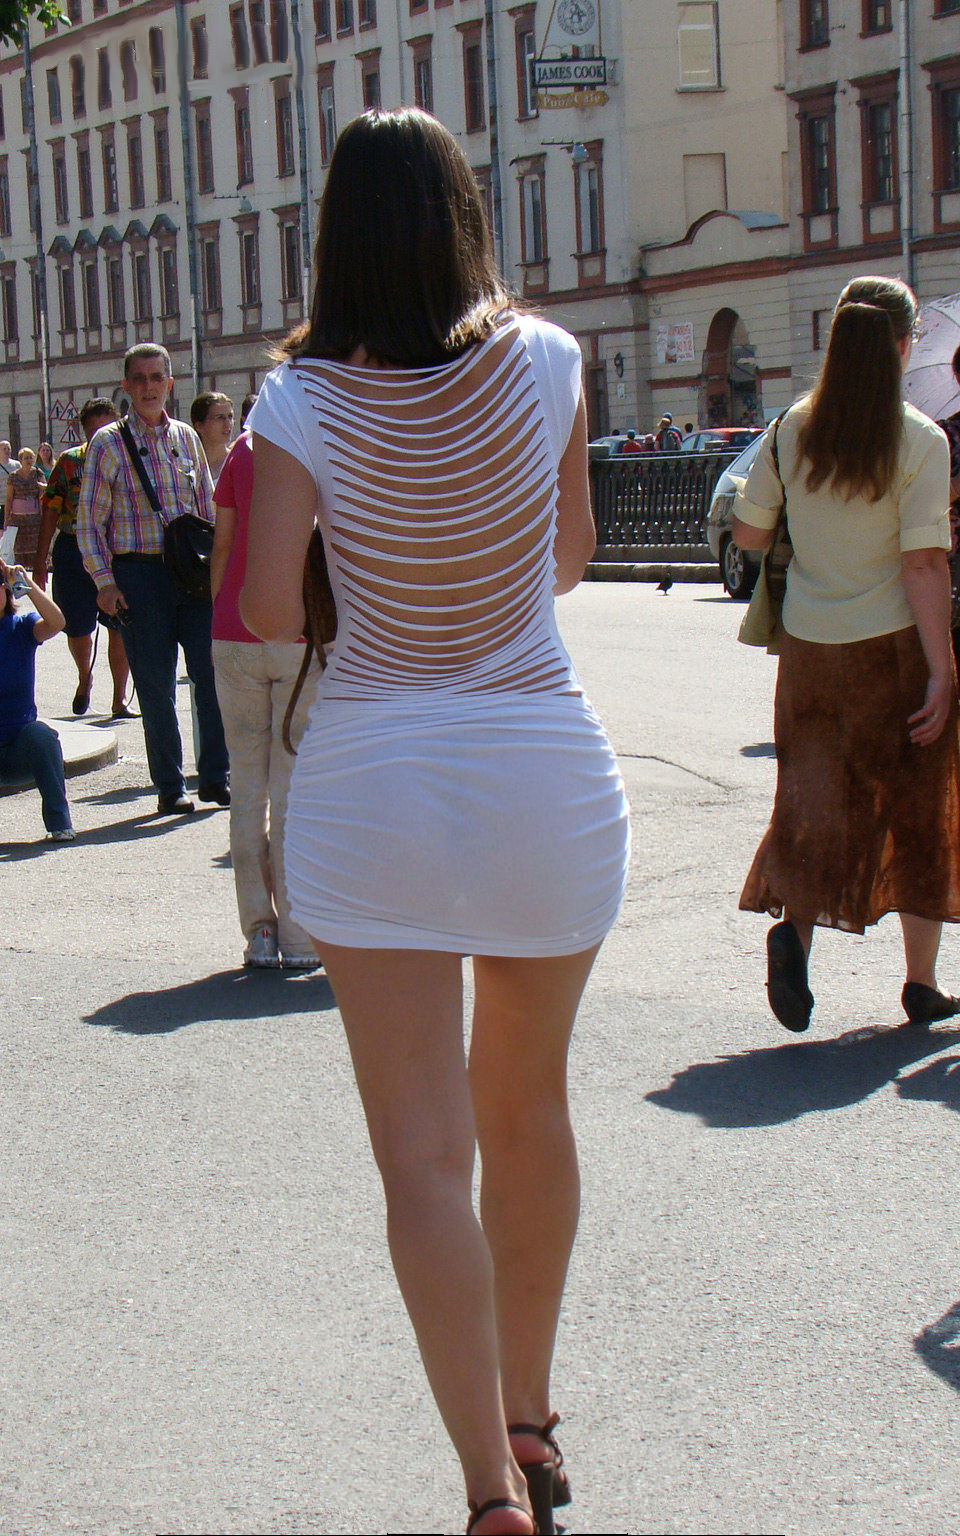 Hot ass in tight skirt